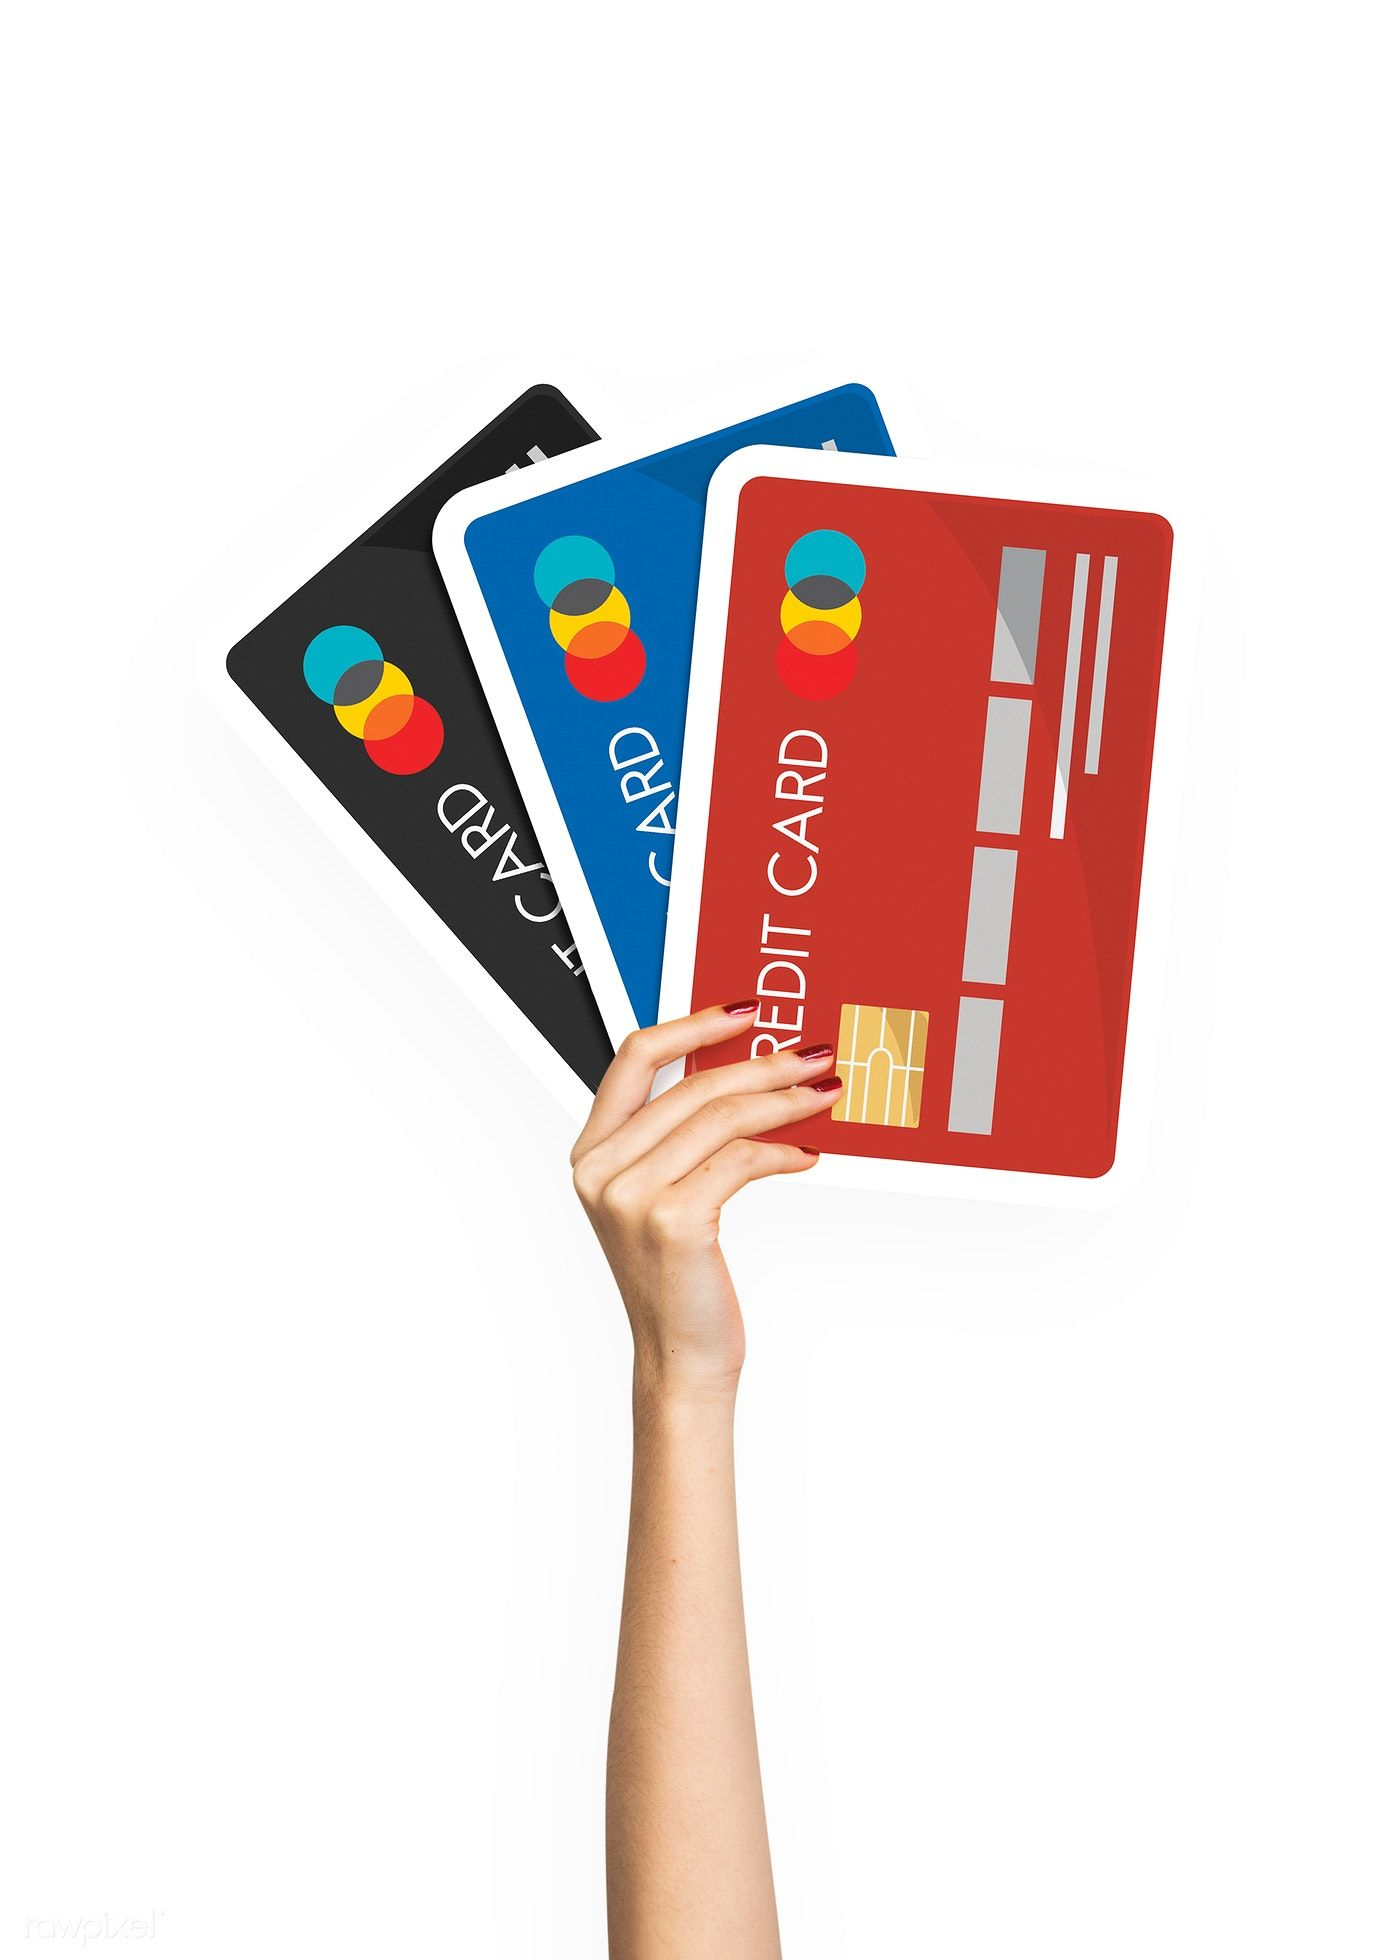 Download premium image of Hand holding credit card clipart